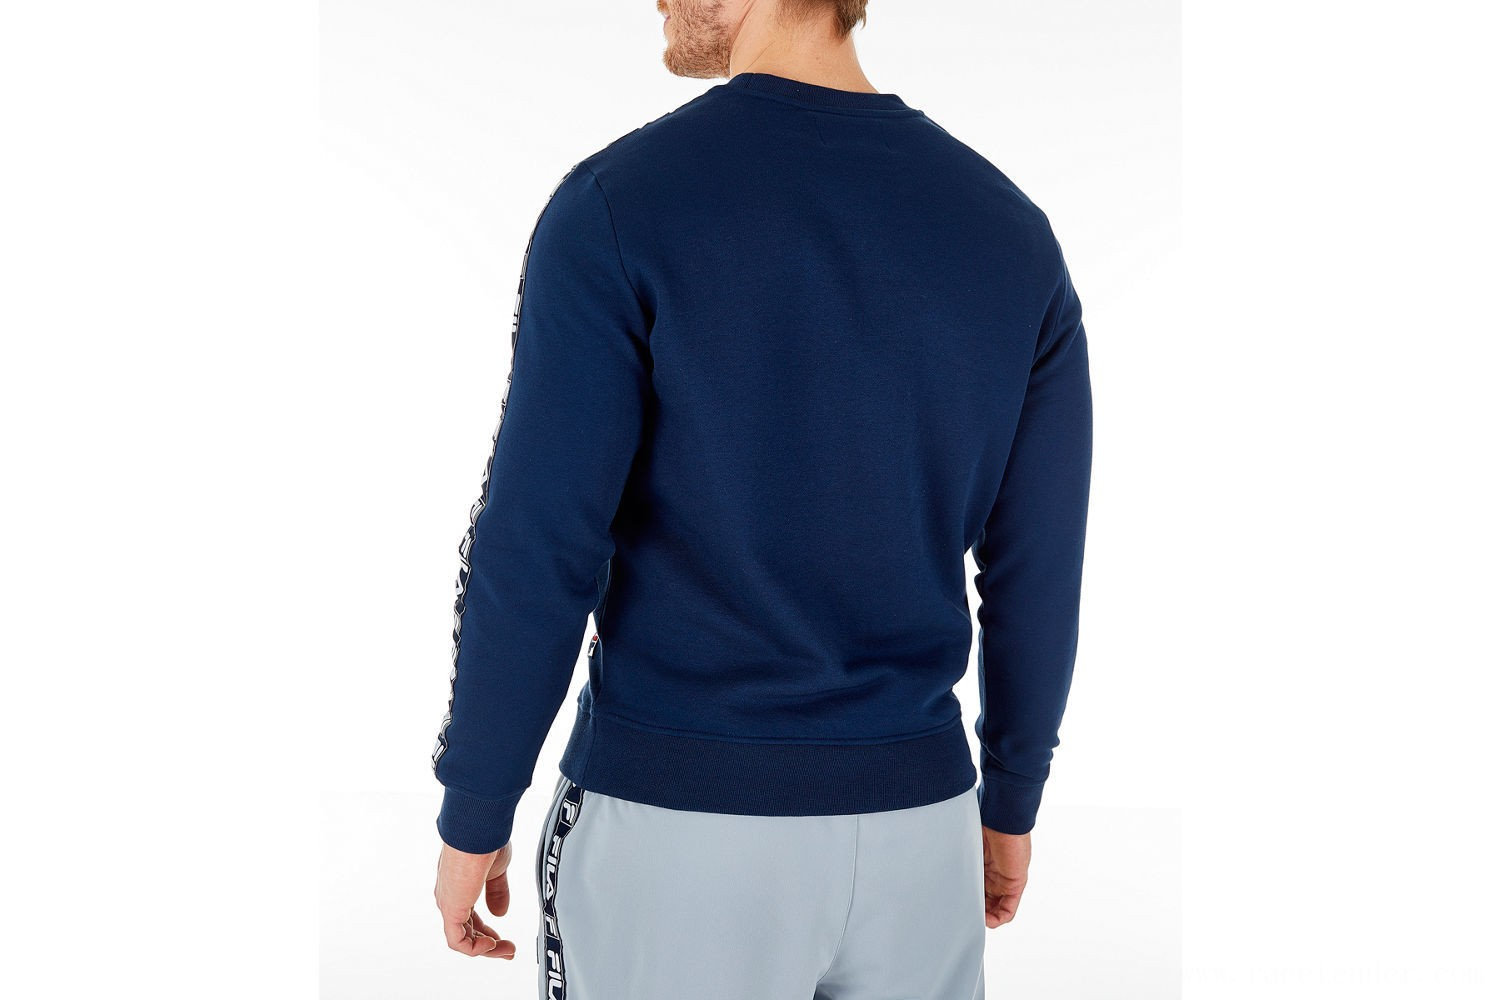 Fila Men's Tag Fleece Crewneck Sweatshirt - Navy